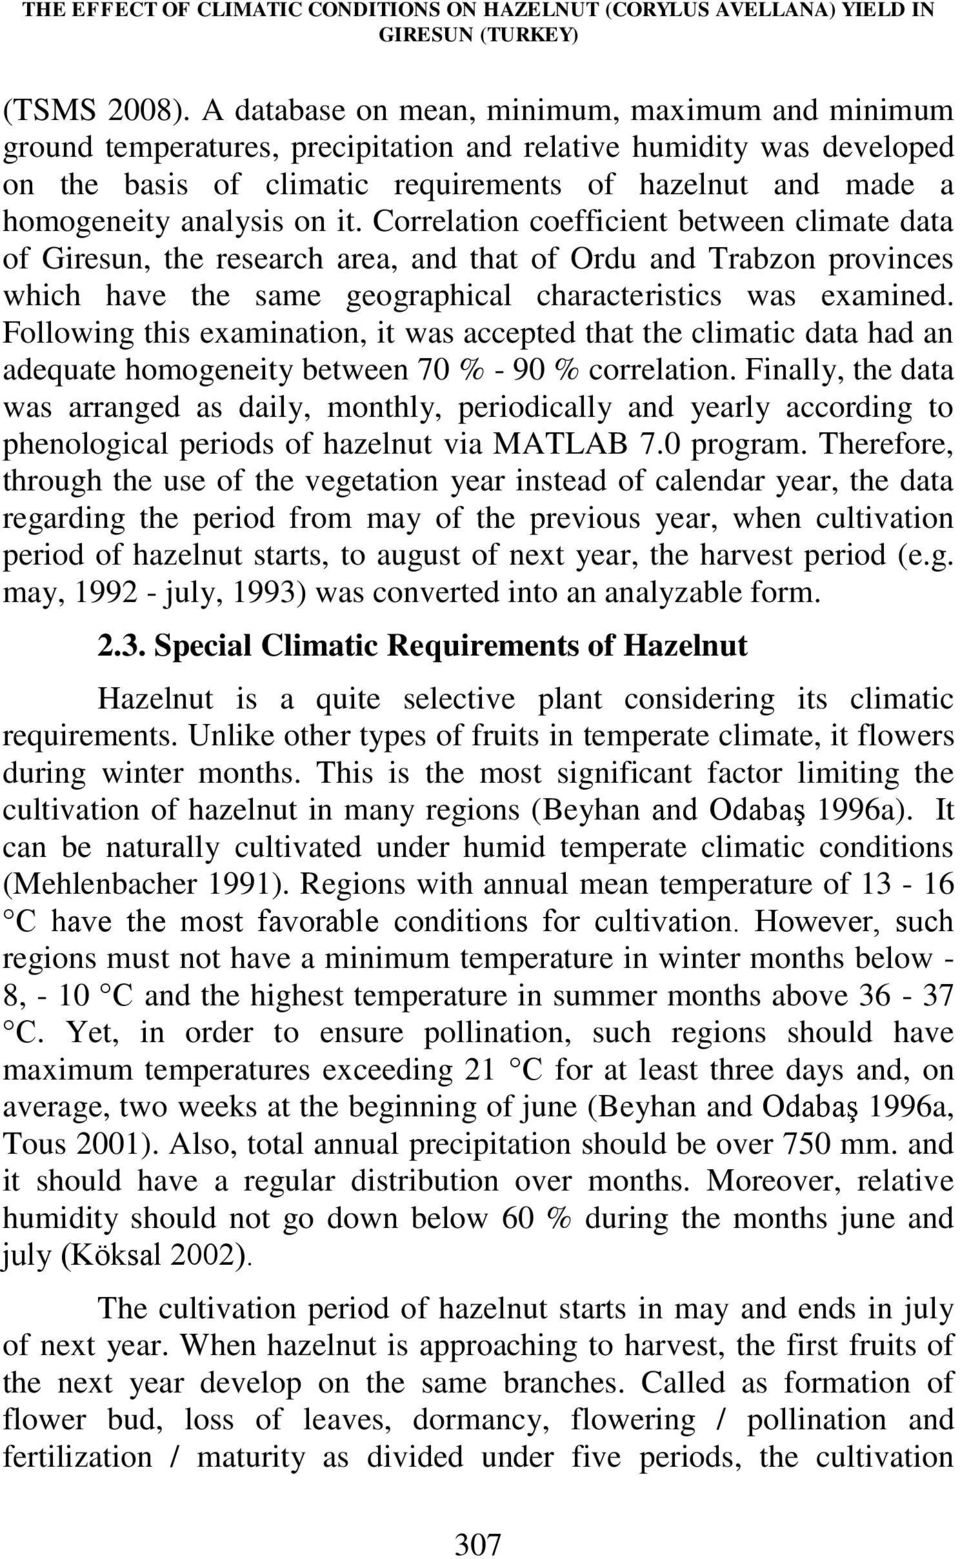 analysis on it. Correlation coefficient between climate data of Giresun, the research area, and that of Ordu and Trabzon provinces which have the same geographical characteristics was examined.